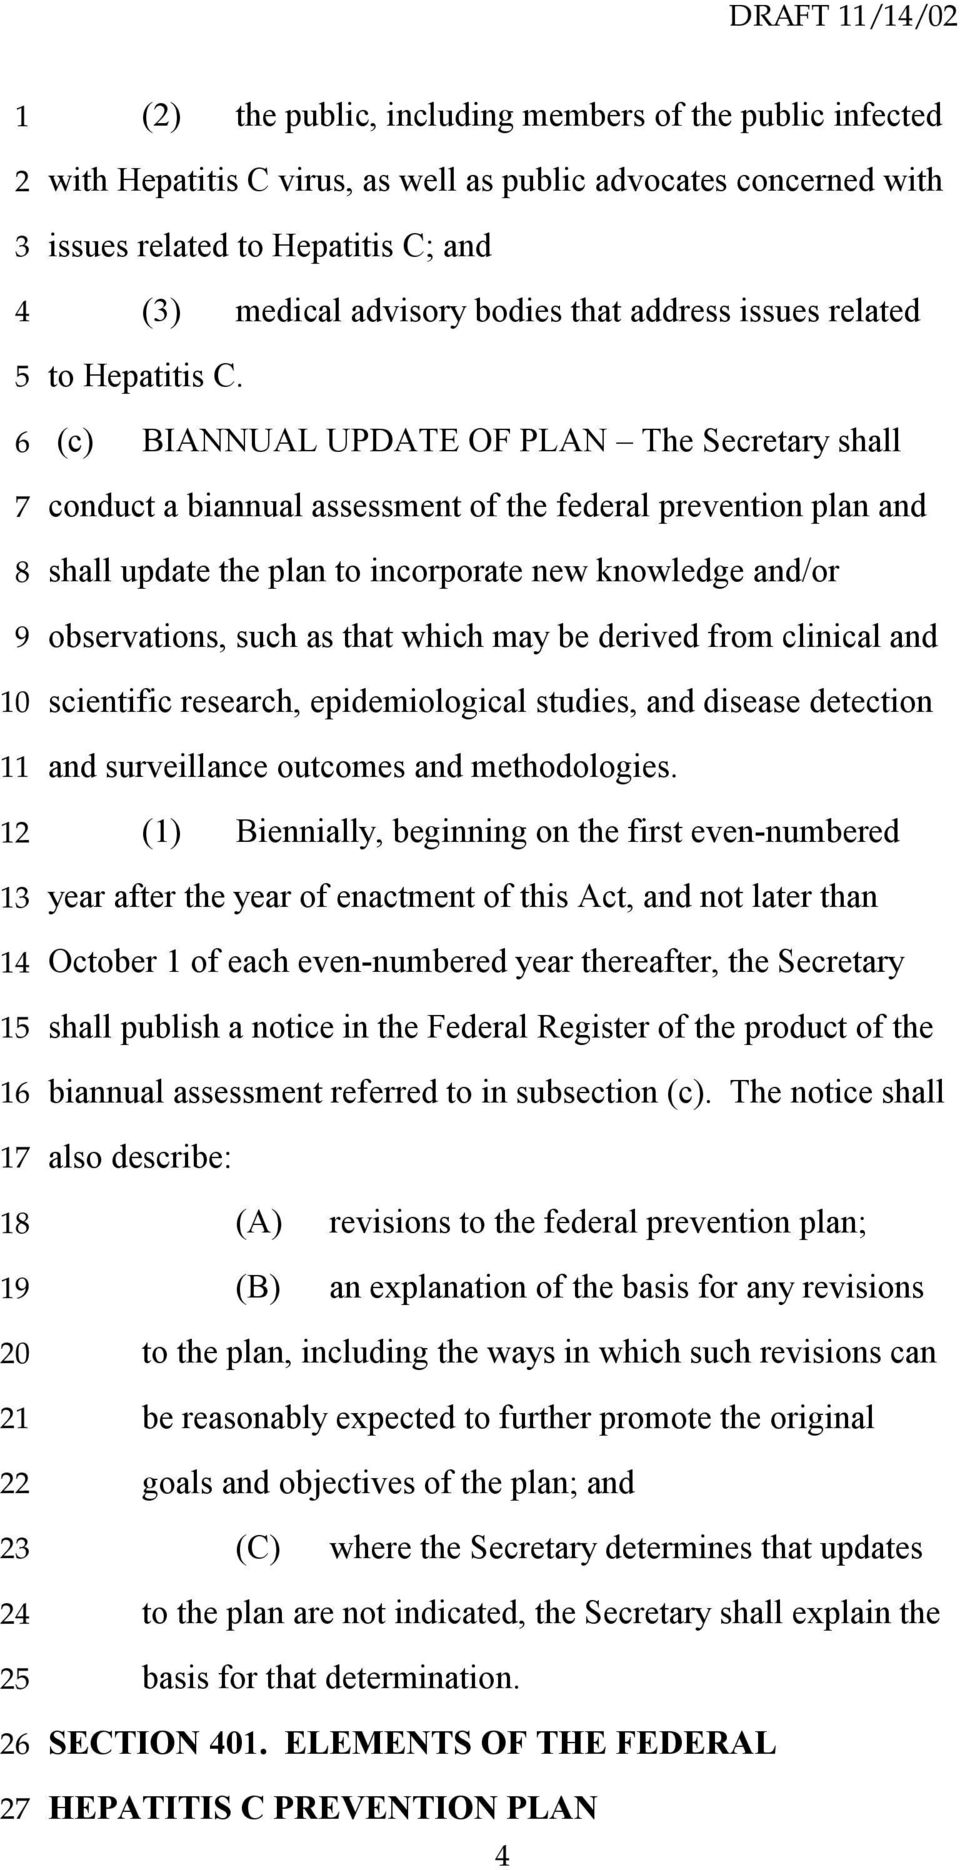 (c) BIANNUAL UPDATE OF PLAN The Secretary shall 0 conduct a biannual assessment of the federal prevention plan and shall update the plan to incorporate new knowledge and/or observations, such as that